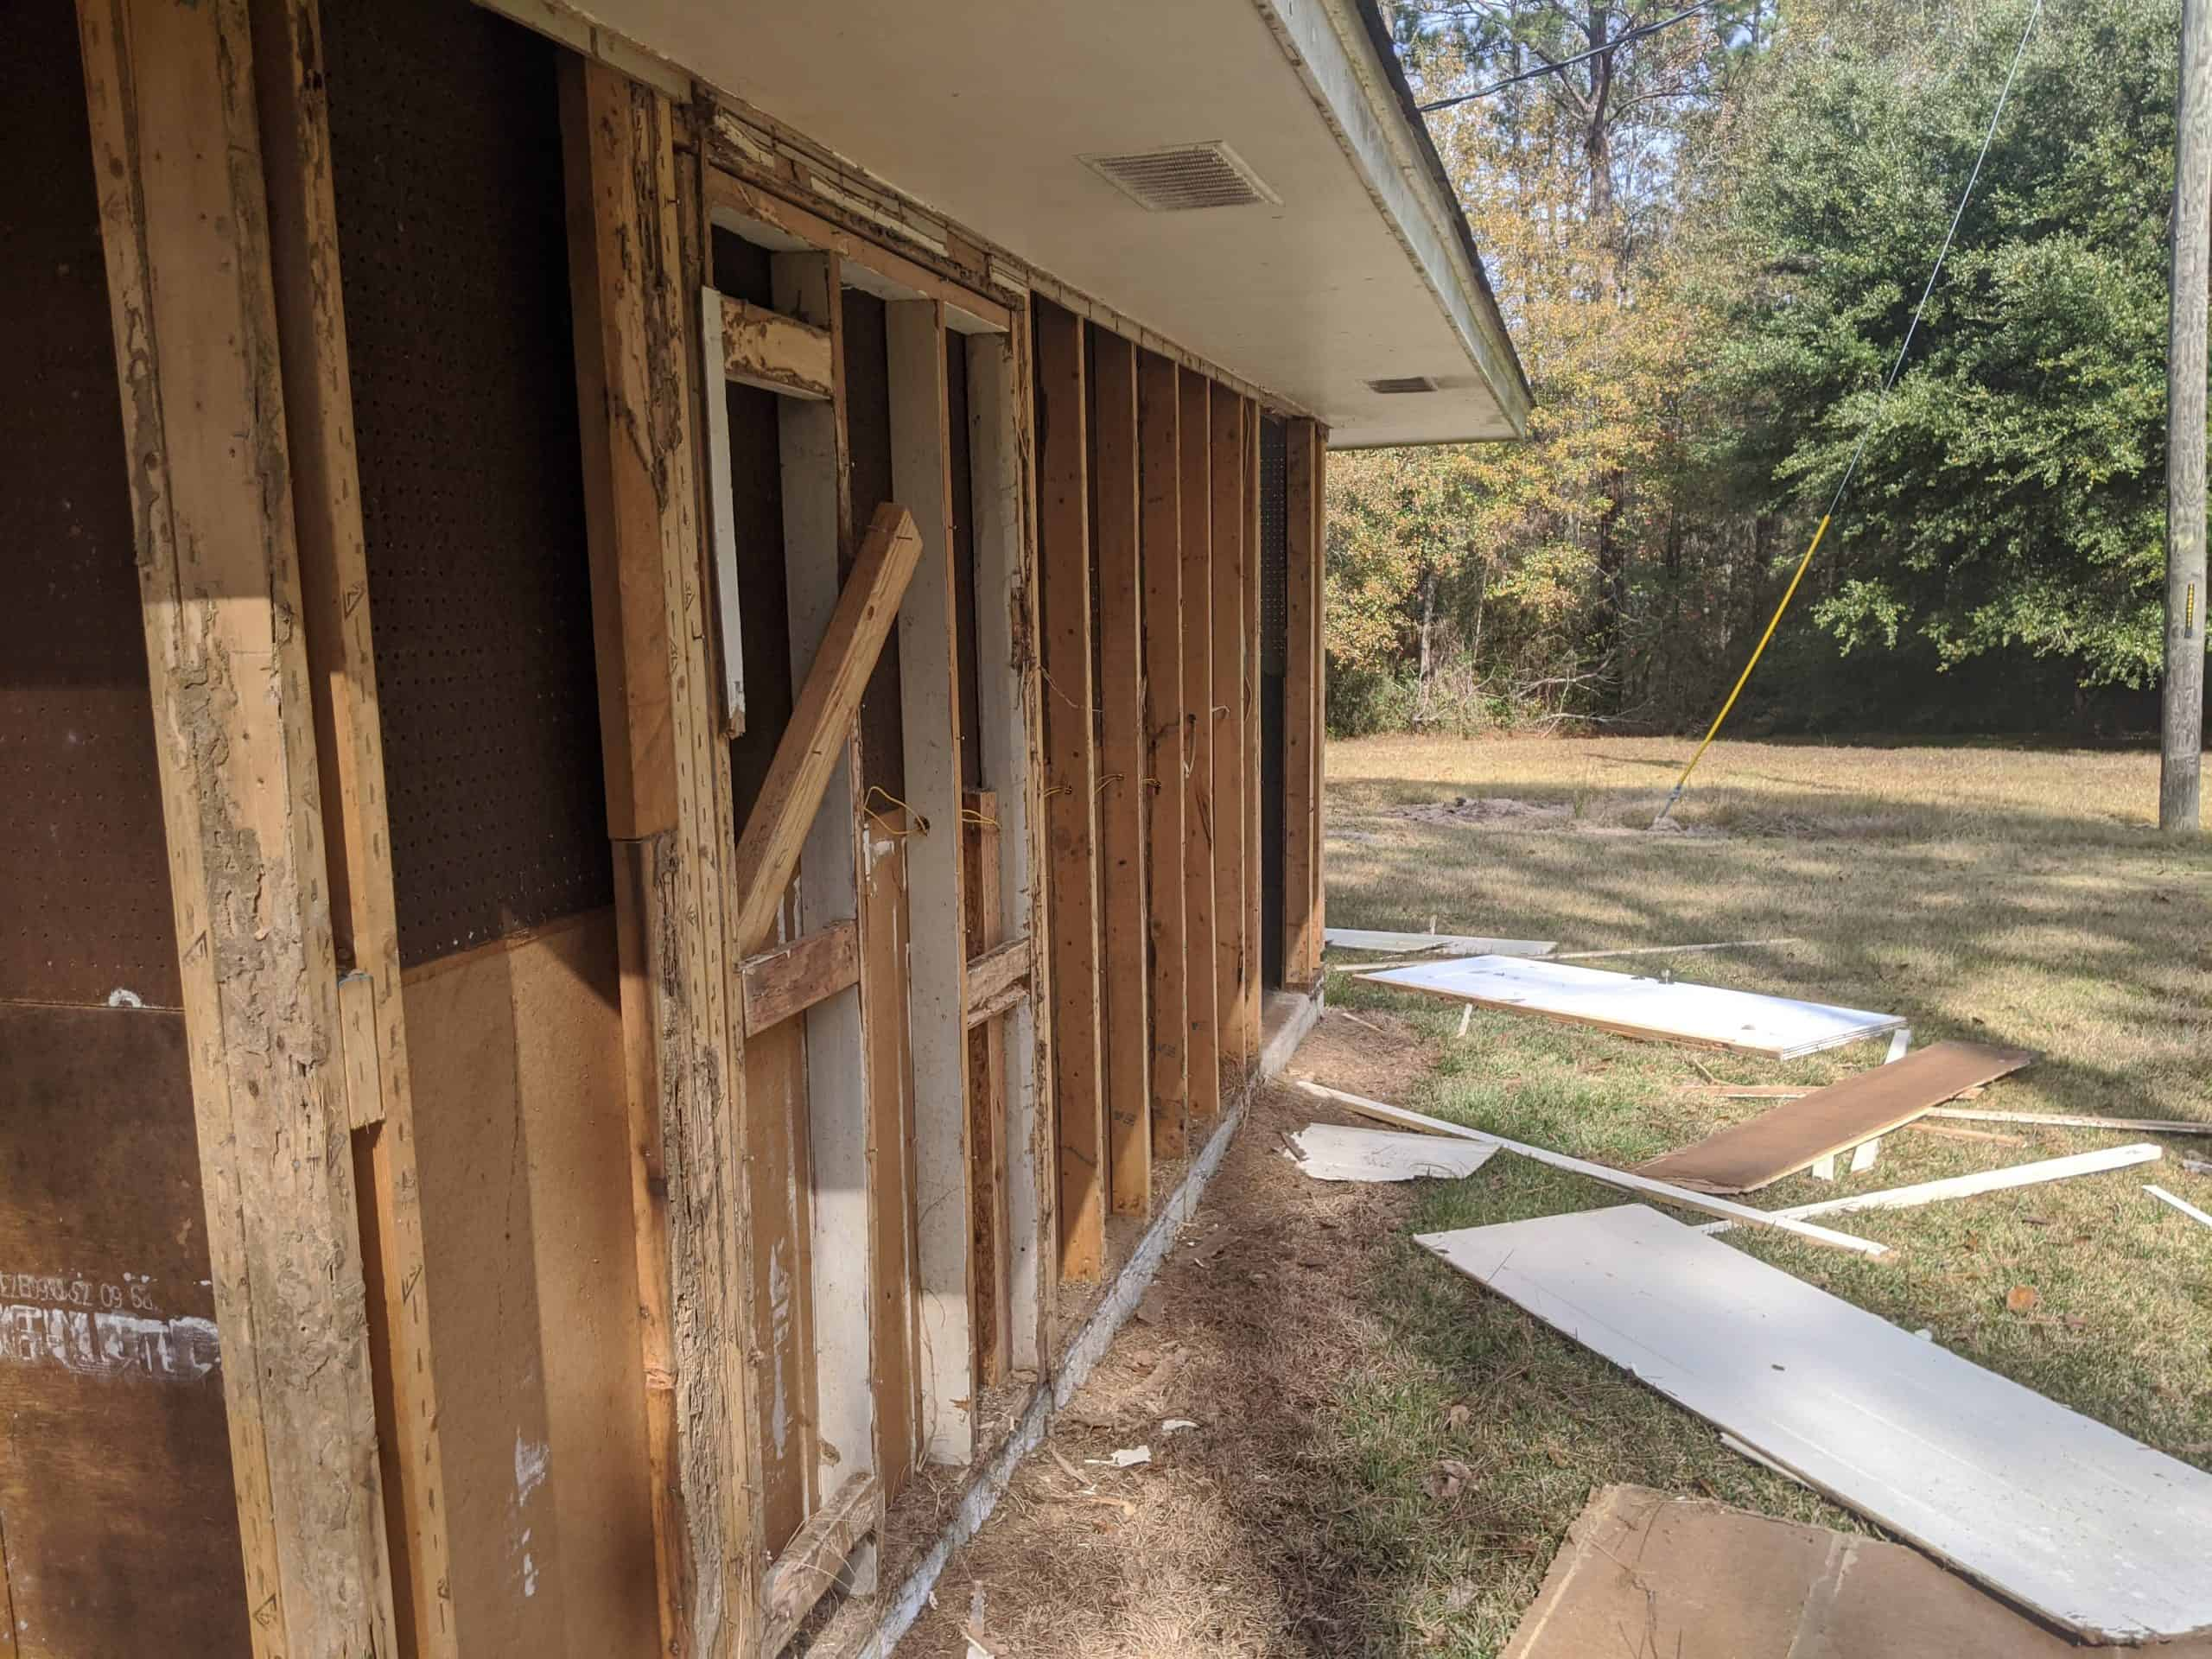 structure removal in New Orleans